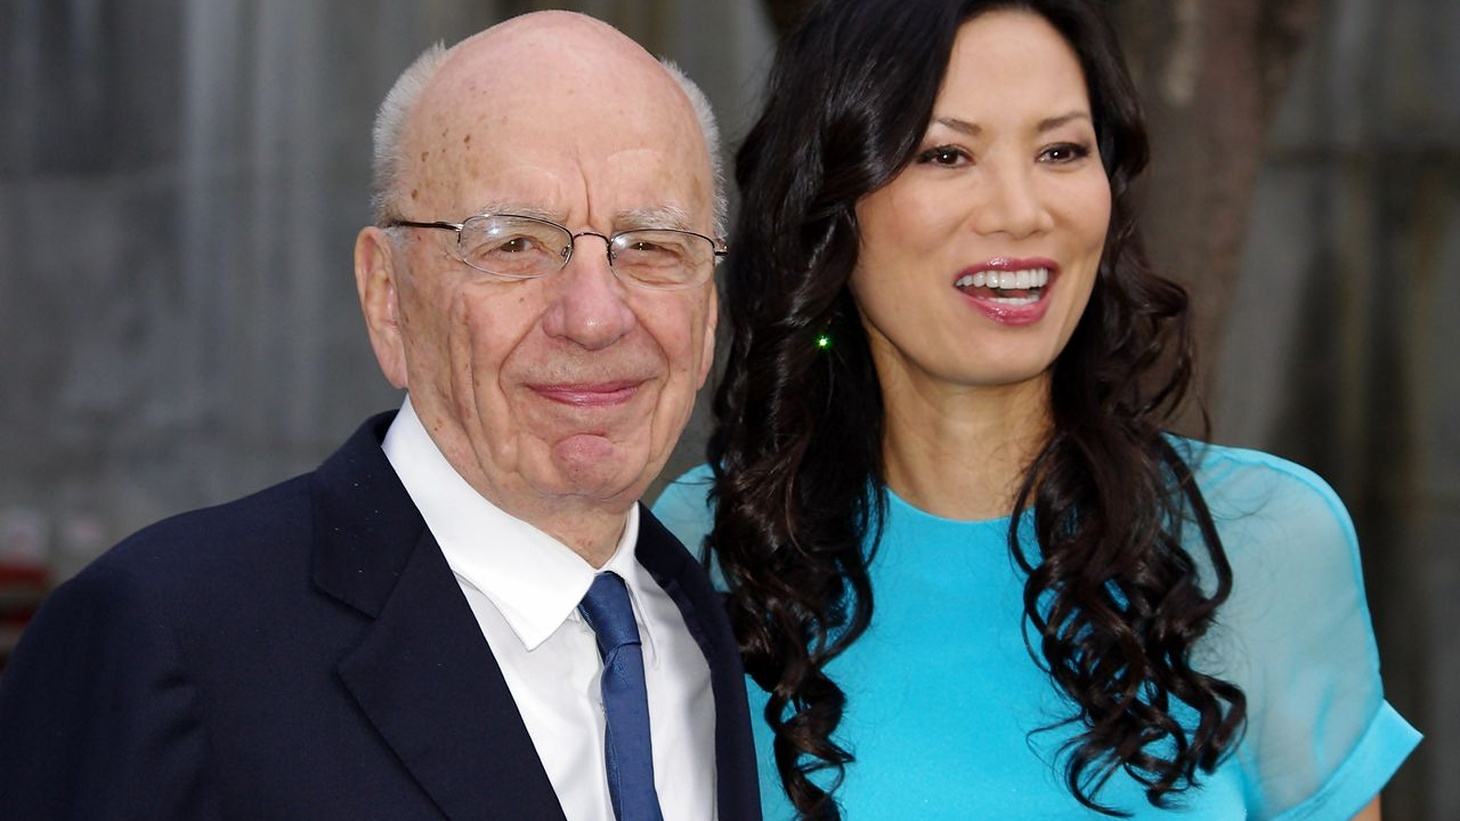 Rupert Murdoch and Wendi Murdoch at the Vanity Fair party celebrating the 10th anniversary of the Tribeca Film Festival, 2011.